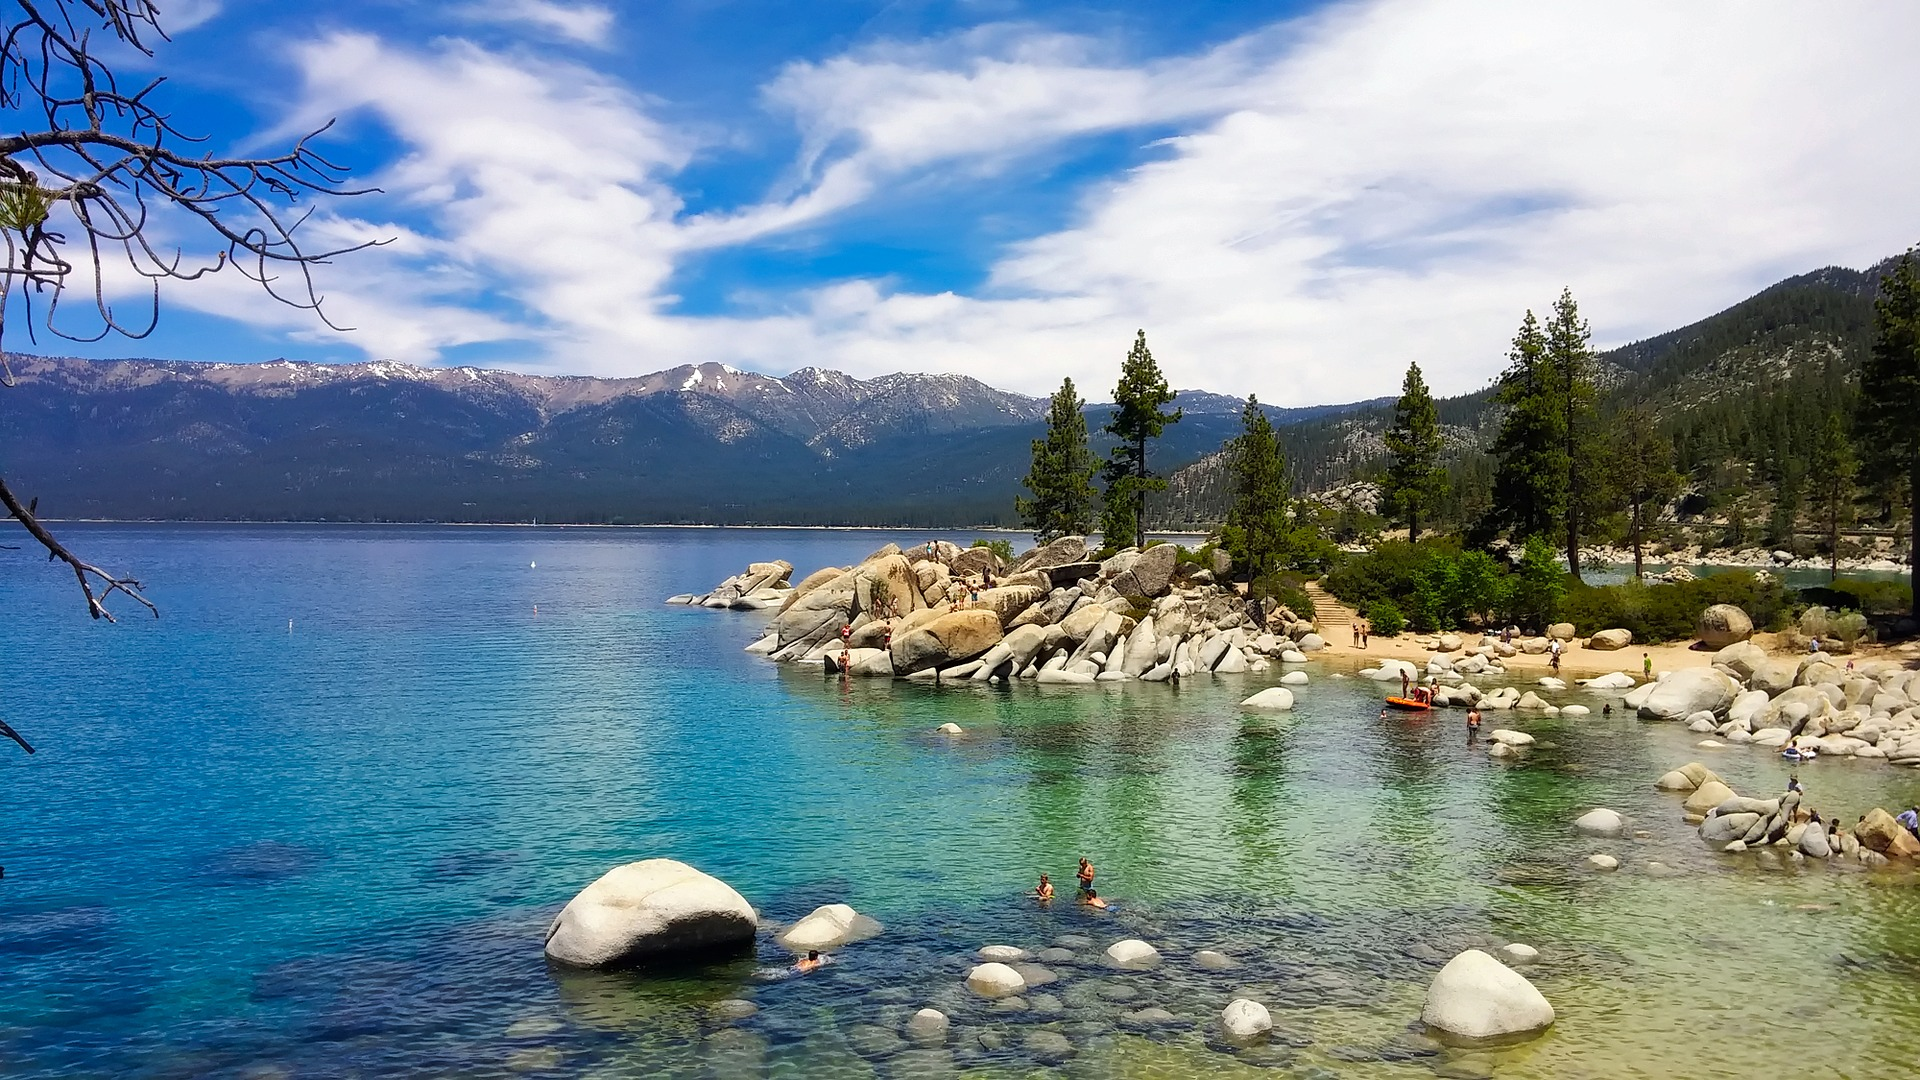 lake-tahoe-2183724_1920